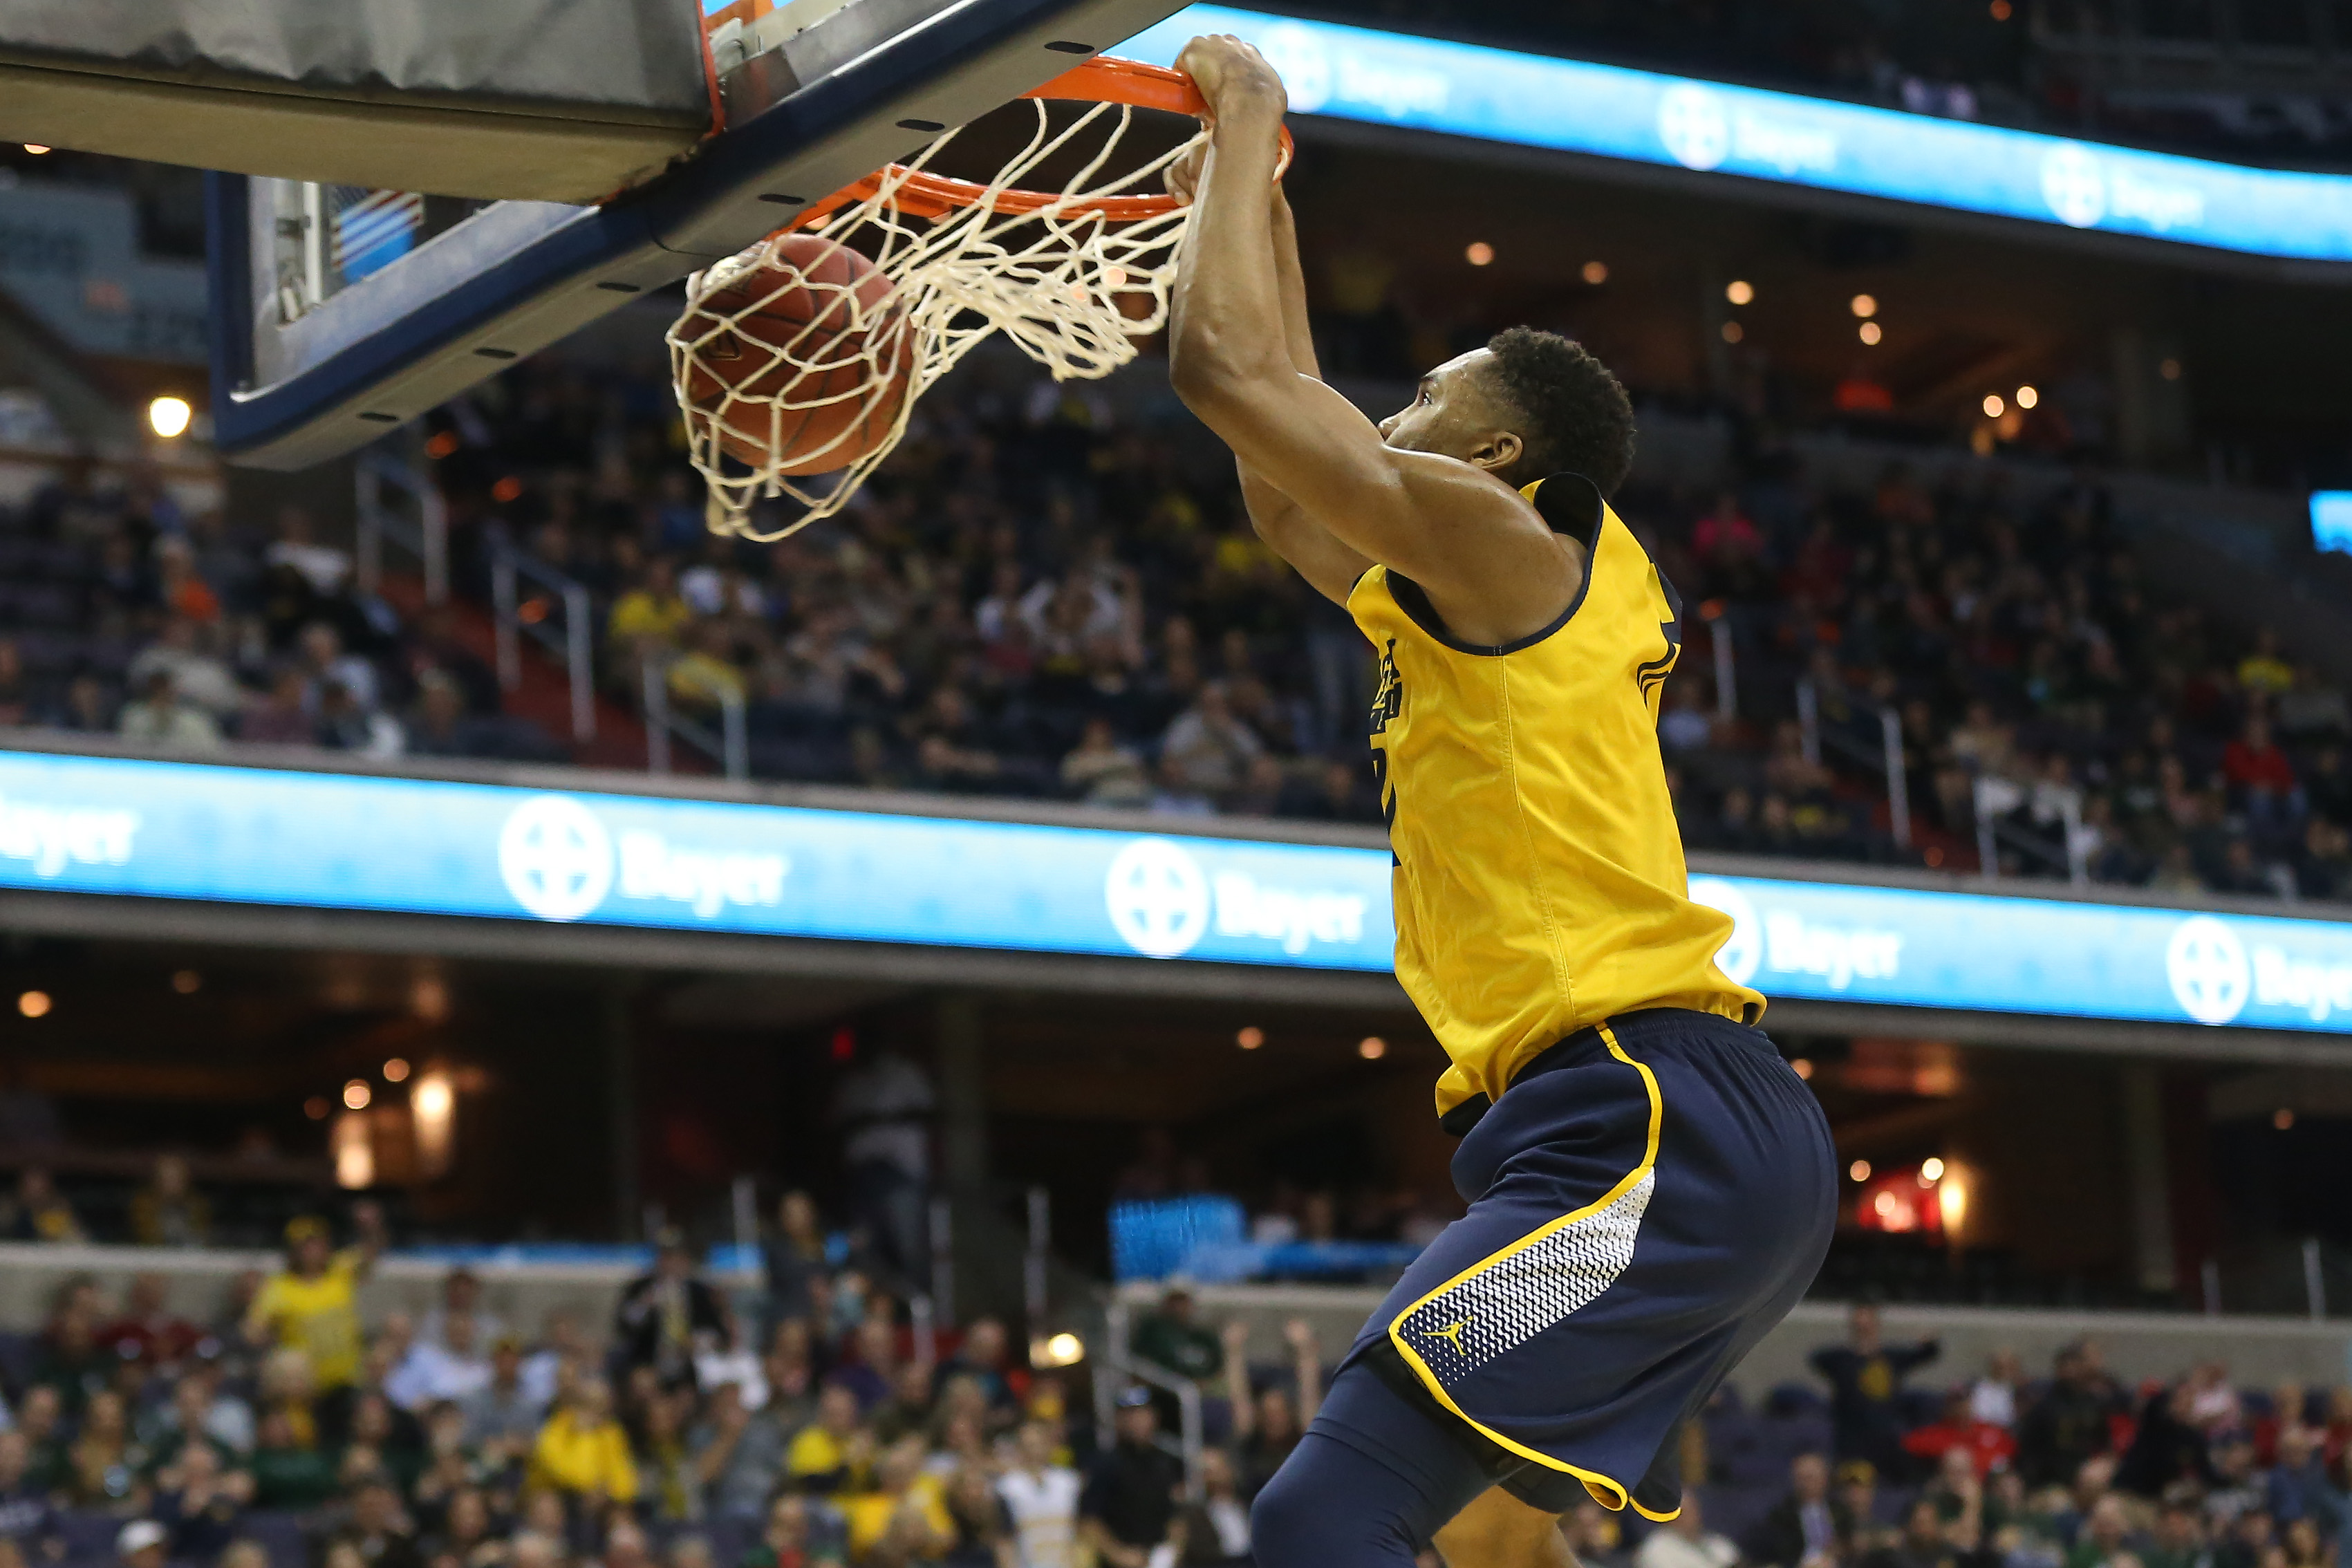 3aee8f938 ... Michigan Wolverines guard Zak Irvin (21) dunks the ball against the  Illinois Fighting Illini in the second half during the Big Ten Conference  Tournament ...